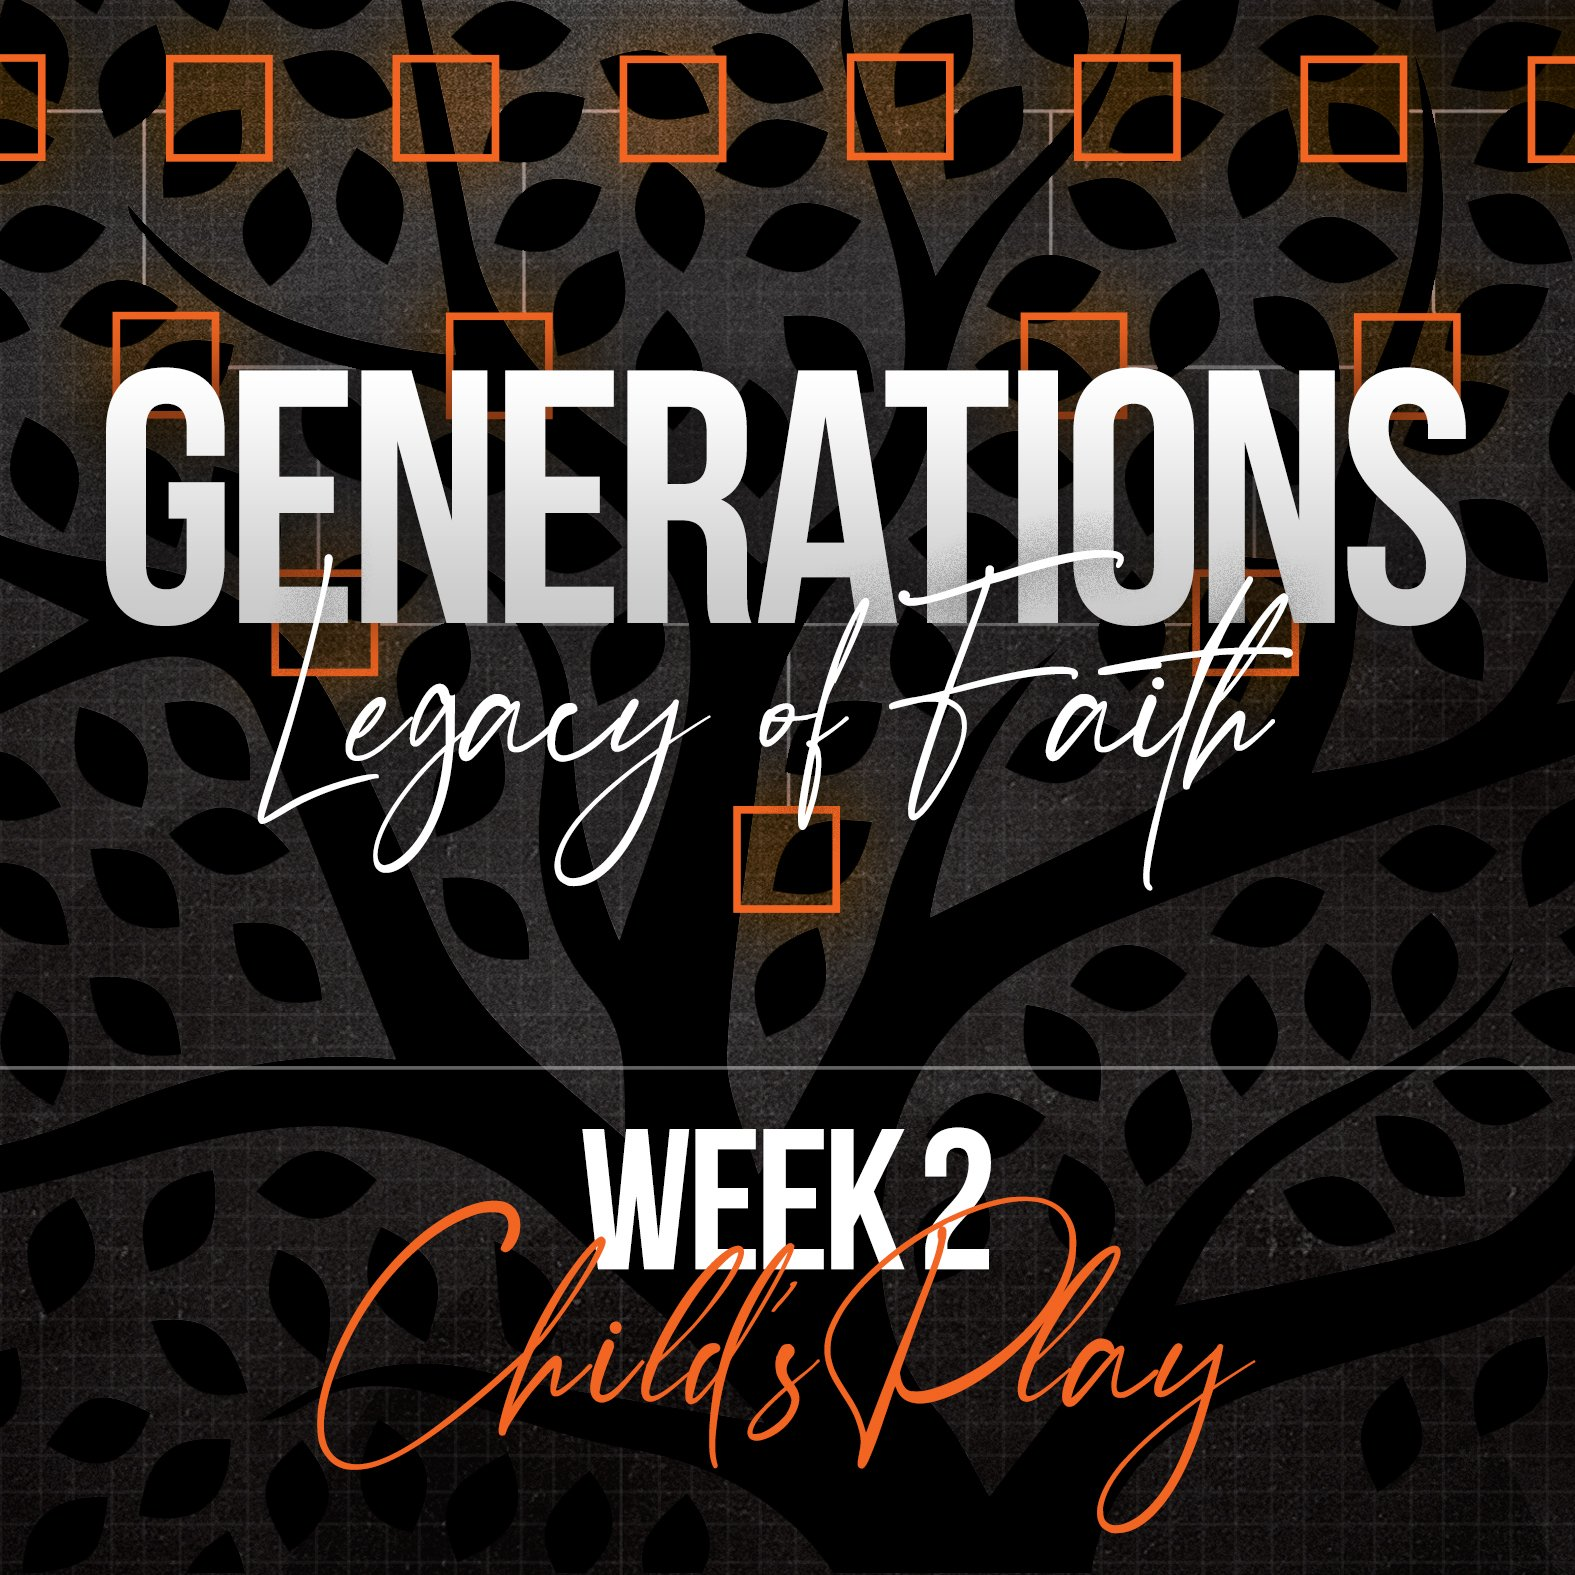 Generations Sermon Web 2